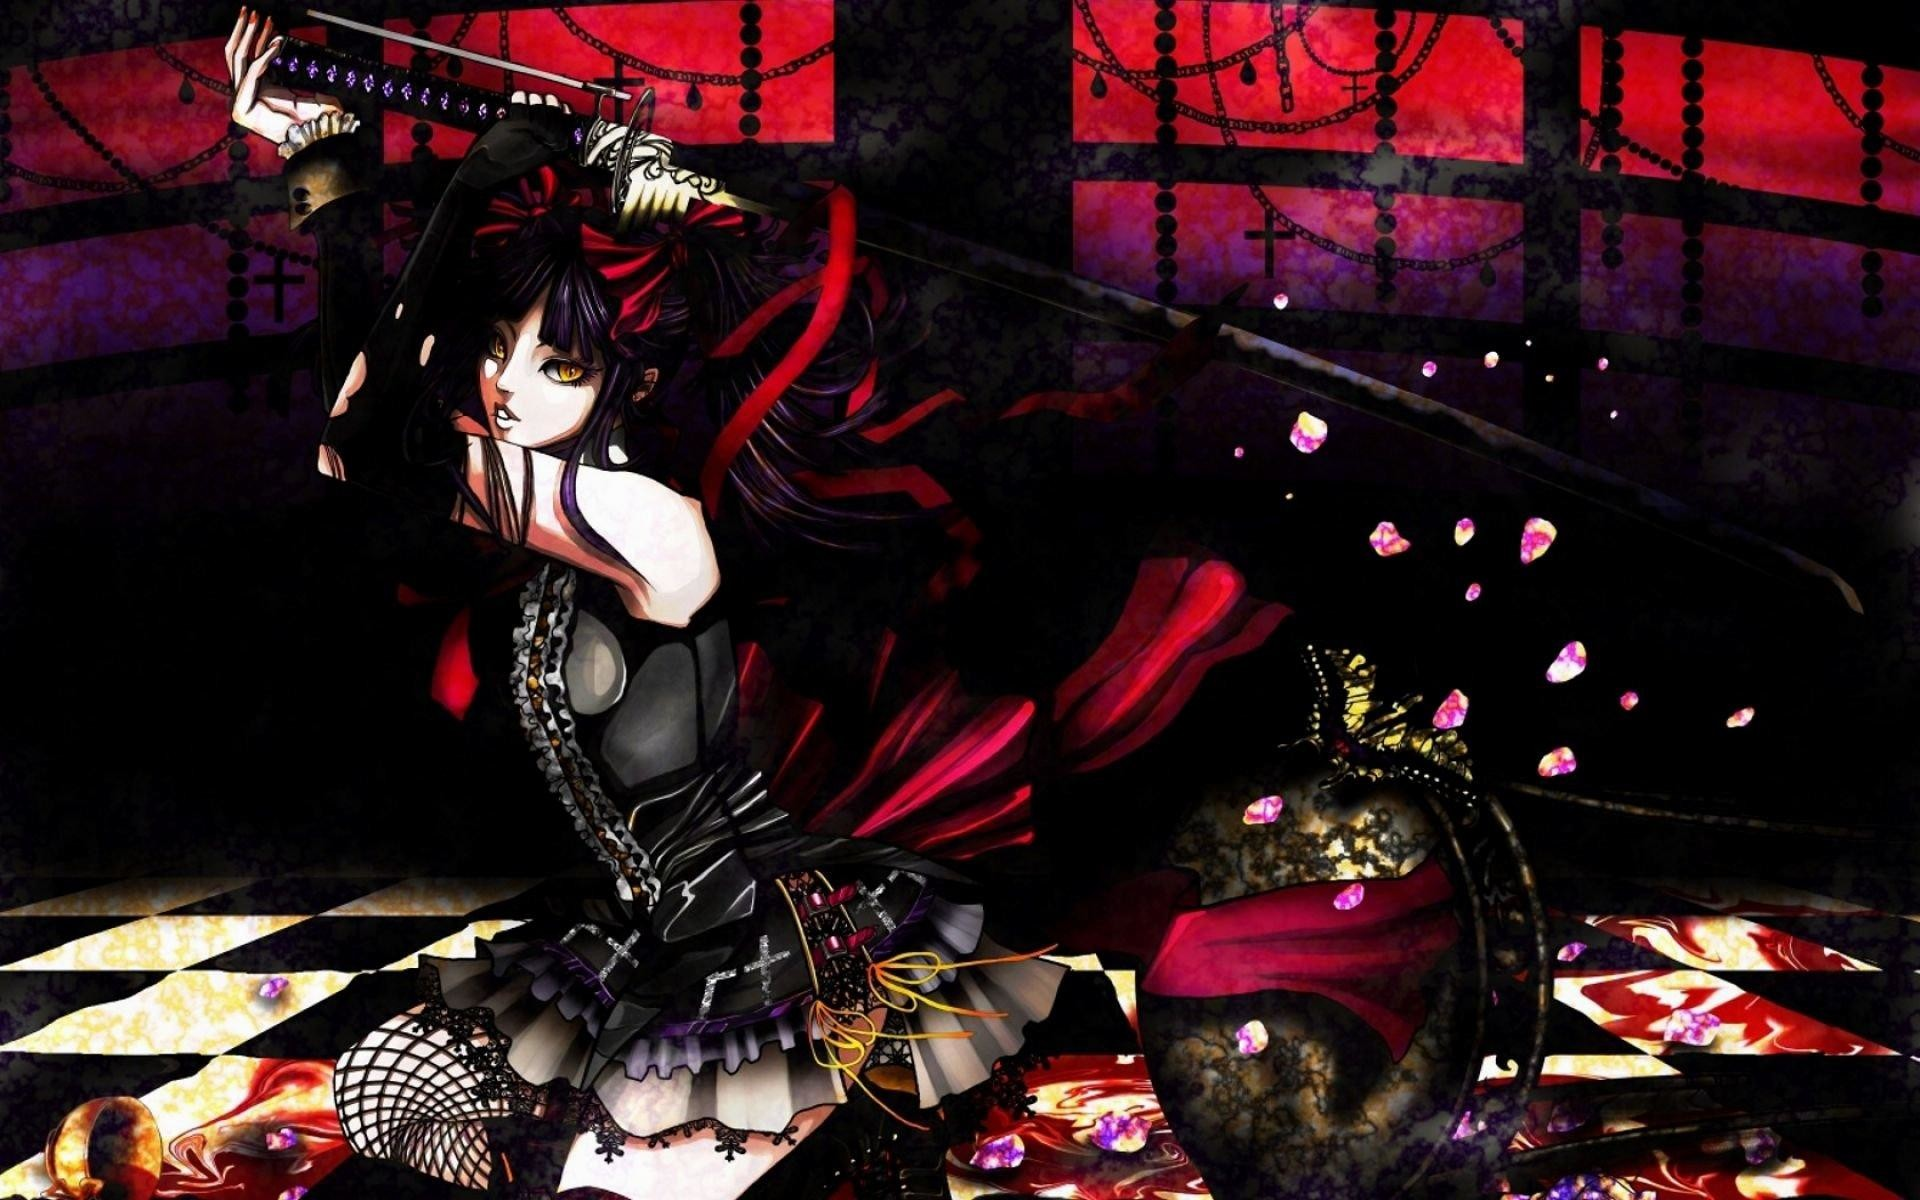 wallpaper.wiki-HD-Gothic-Anime-Wallpapers-PIC-WPE004959